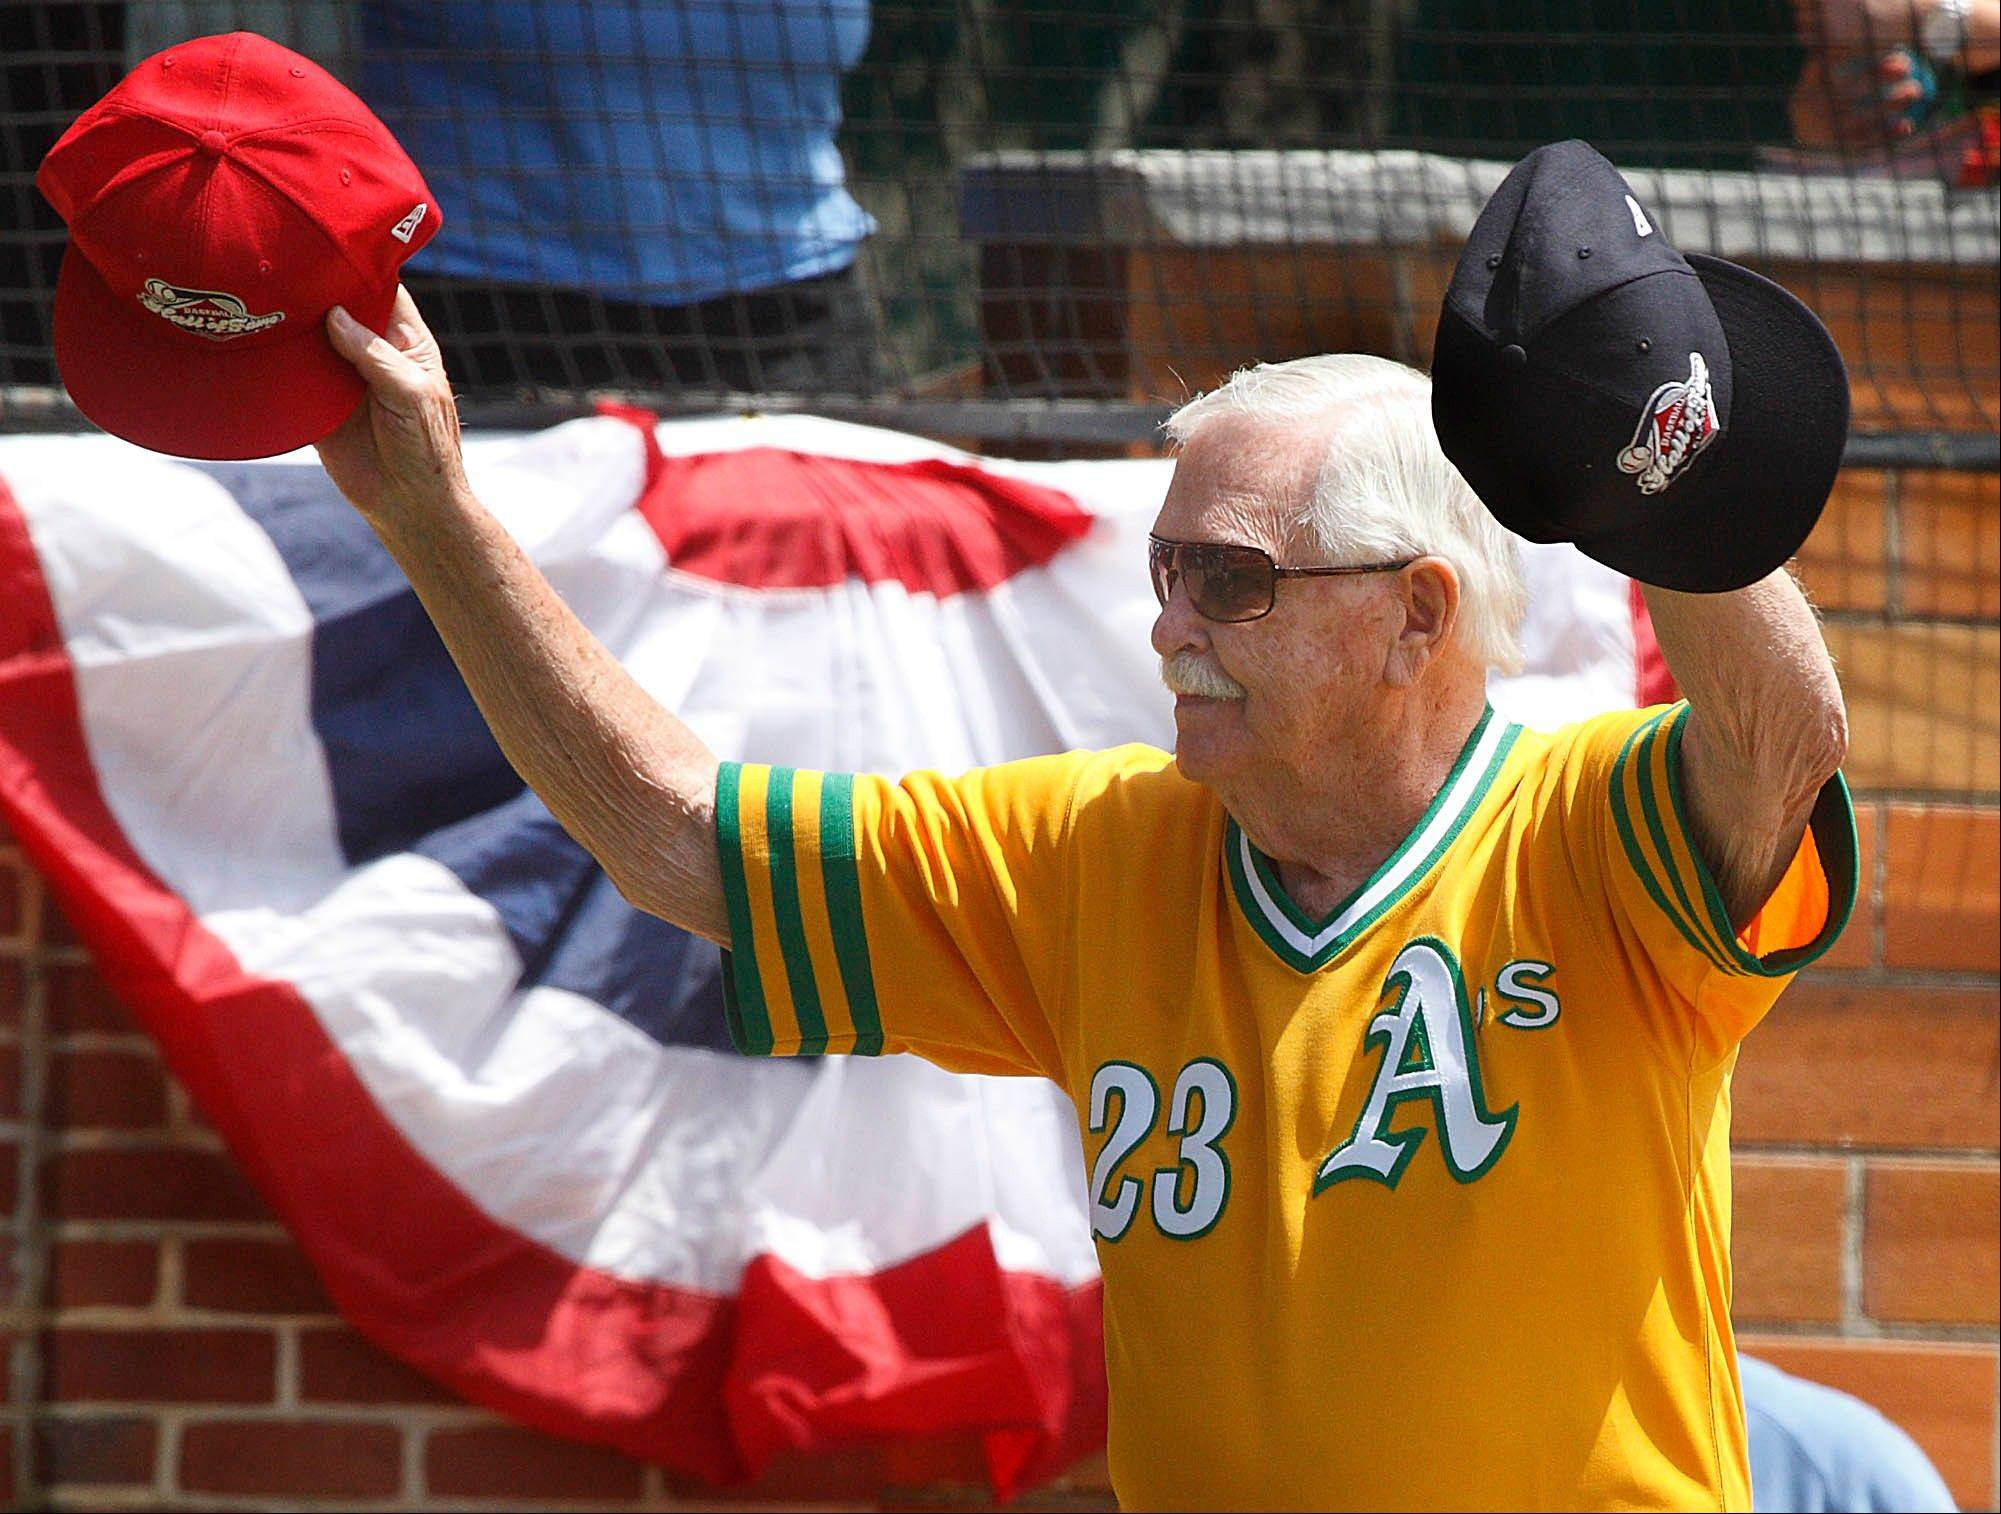 Dick Williams holds out baseball hats of the opposing teams at the National Baseball Hall of Fame Legends Game at Doubleday Field in Cooperstown, N.Y., on June 19.